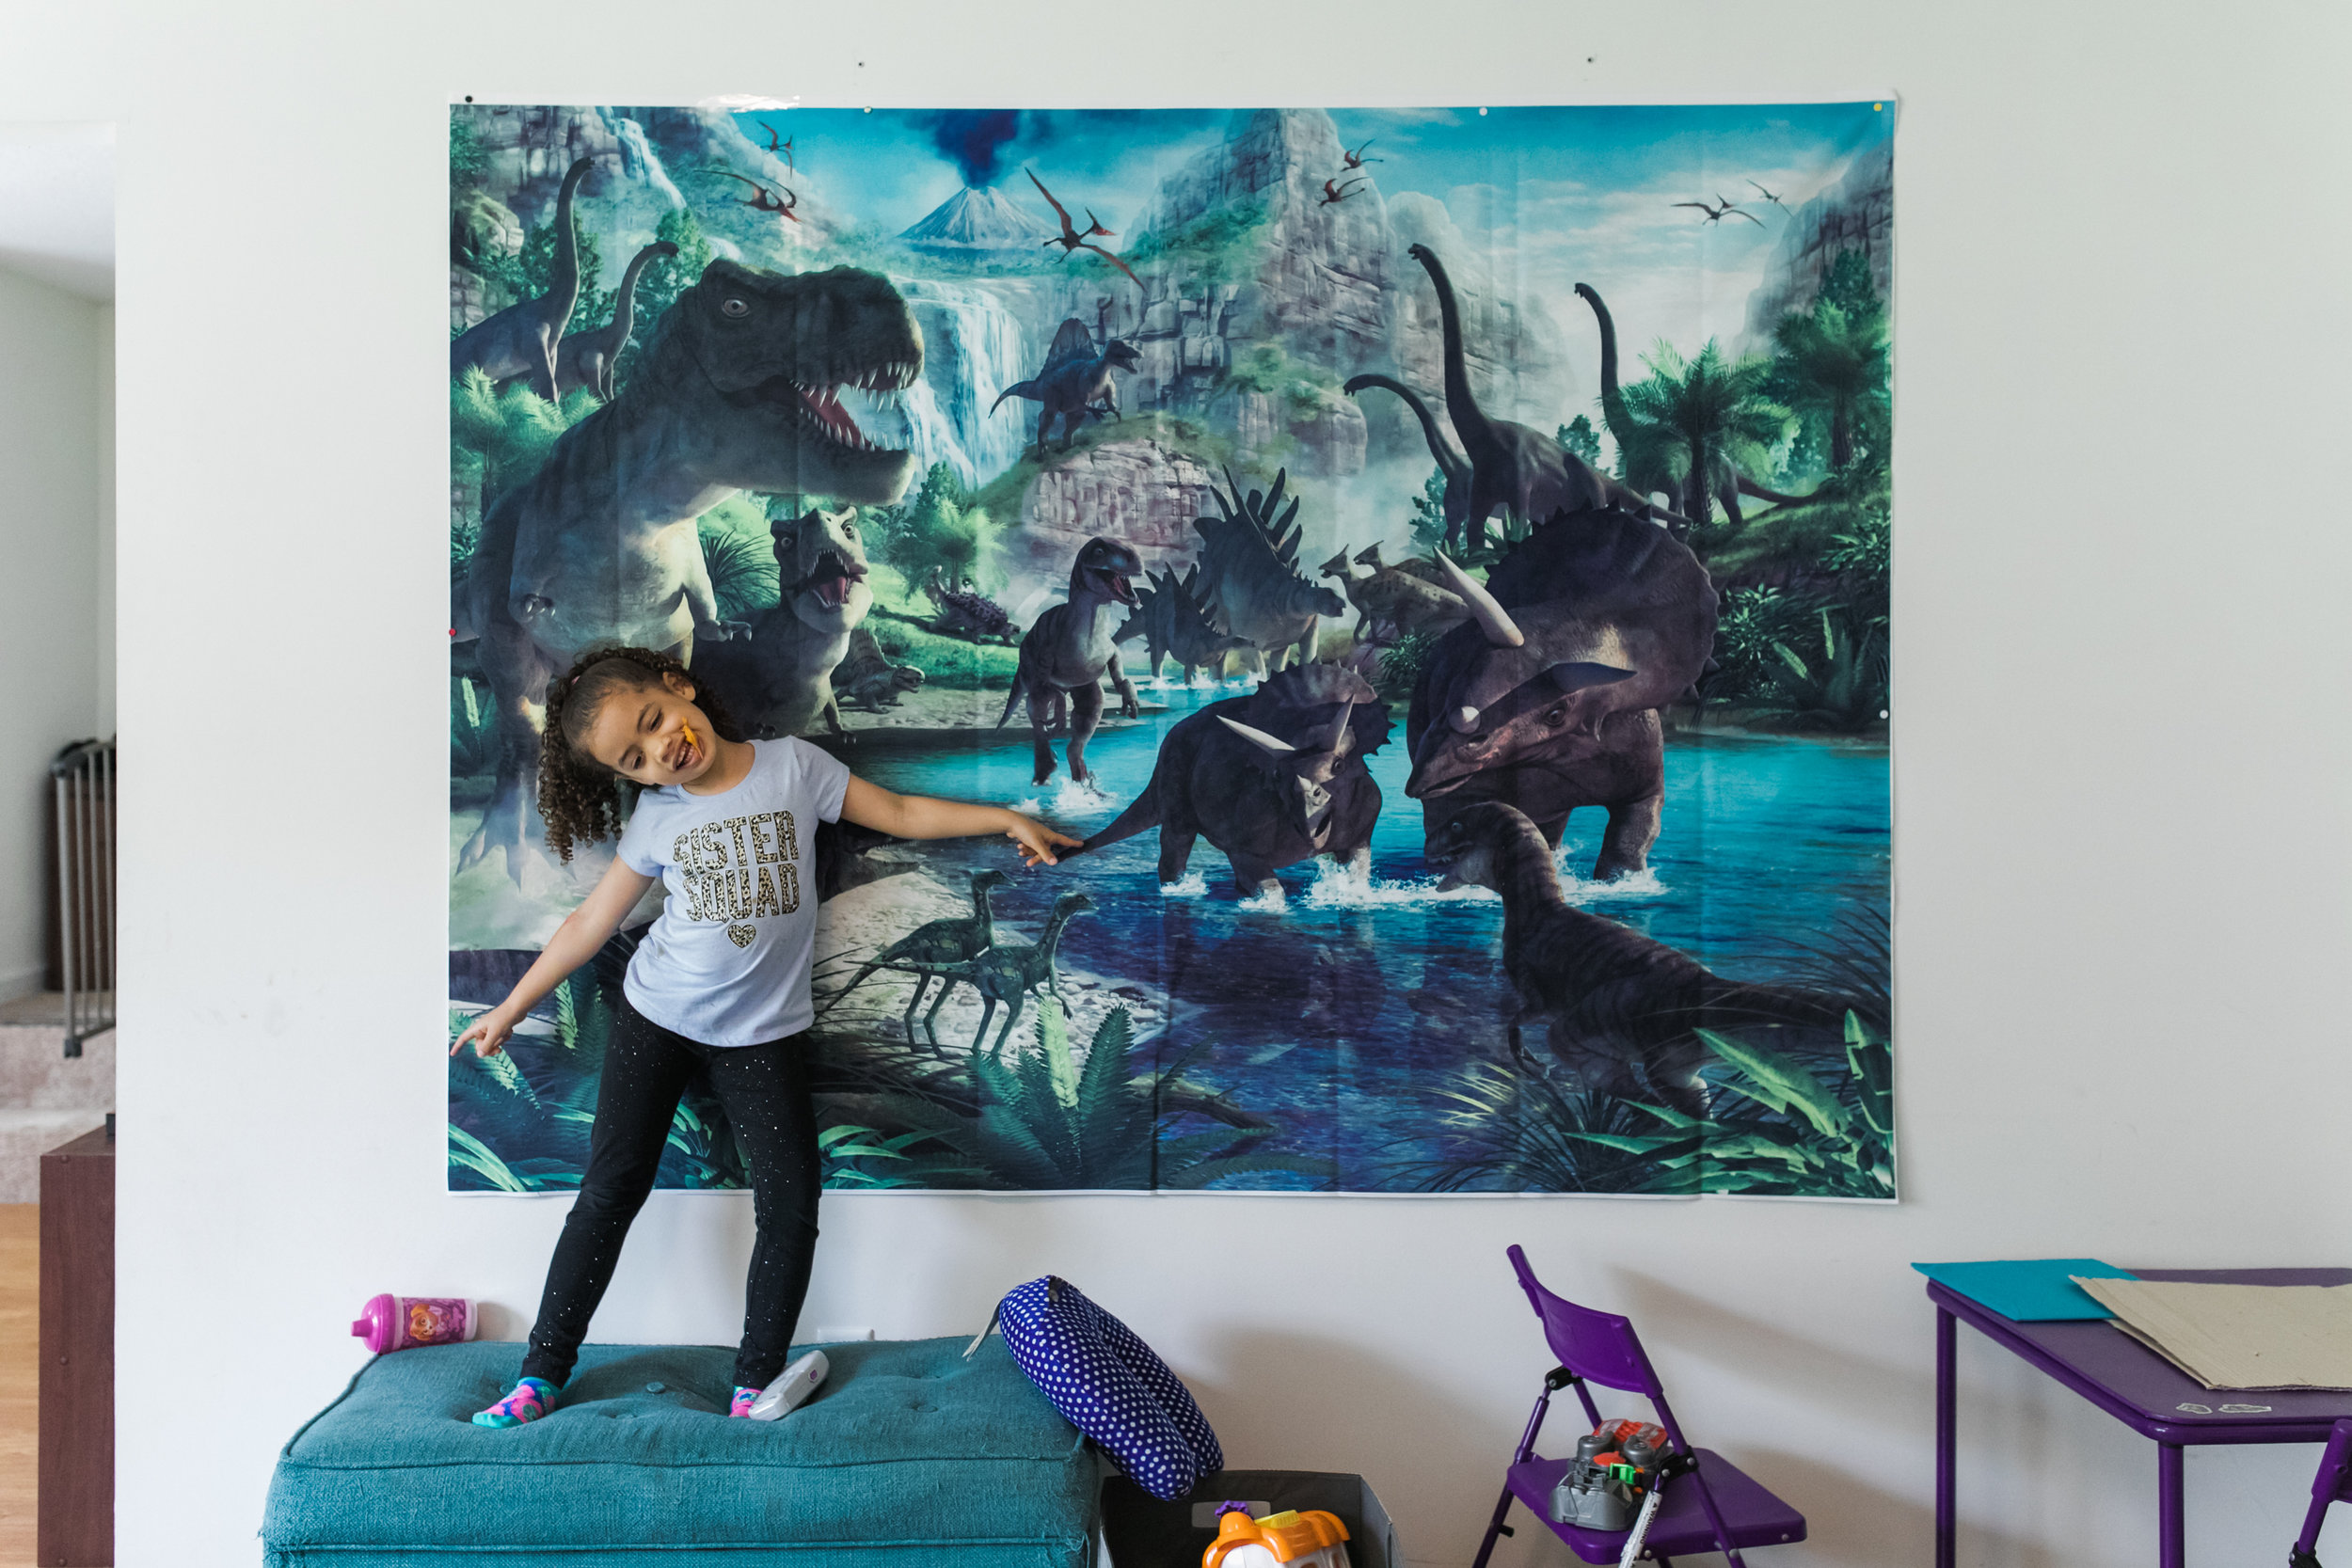 A girl stands on an ottoman in front of a dinosaur poster with a dinosaur toy in her mouth